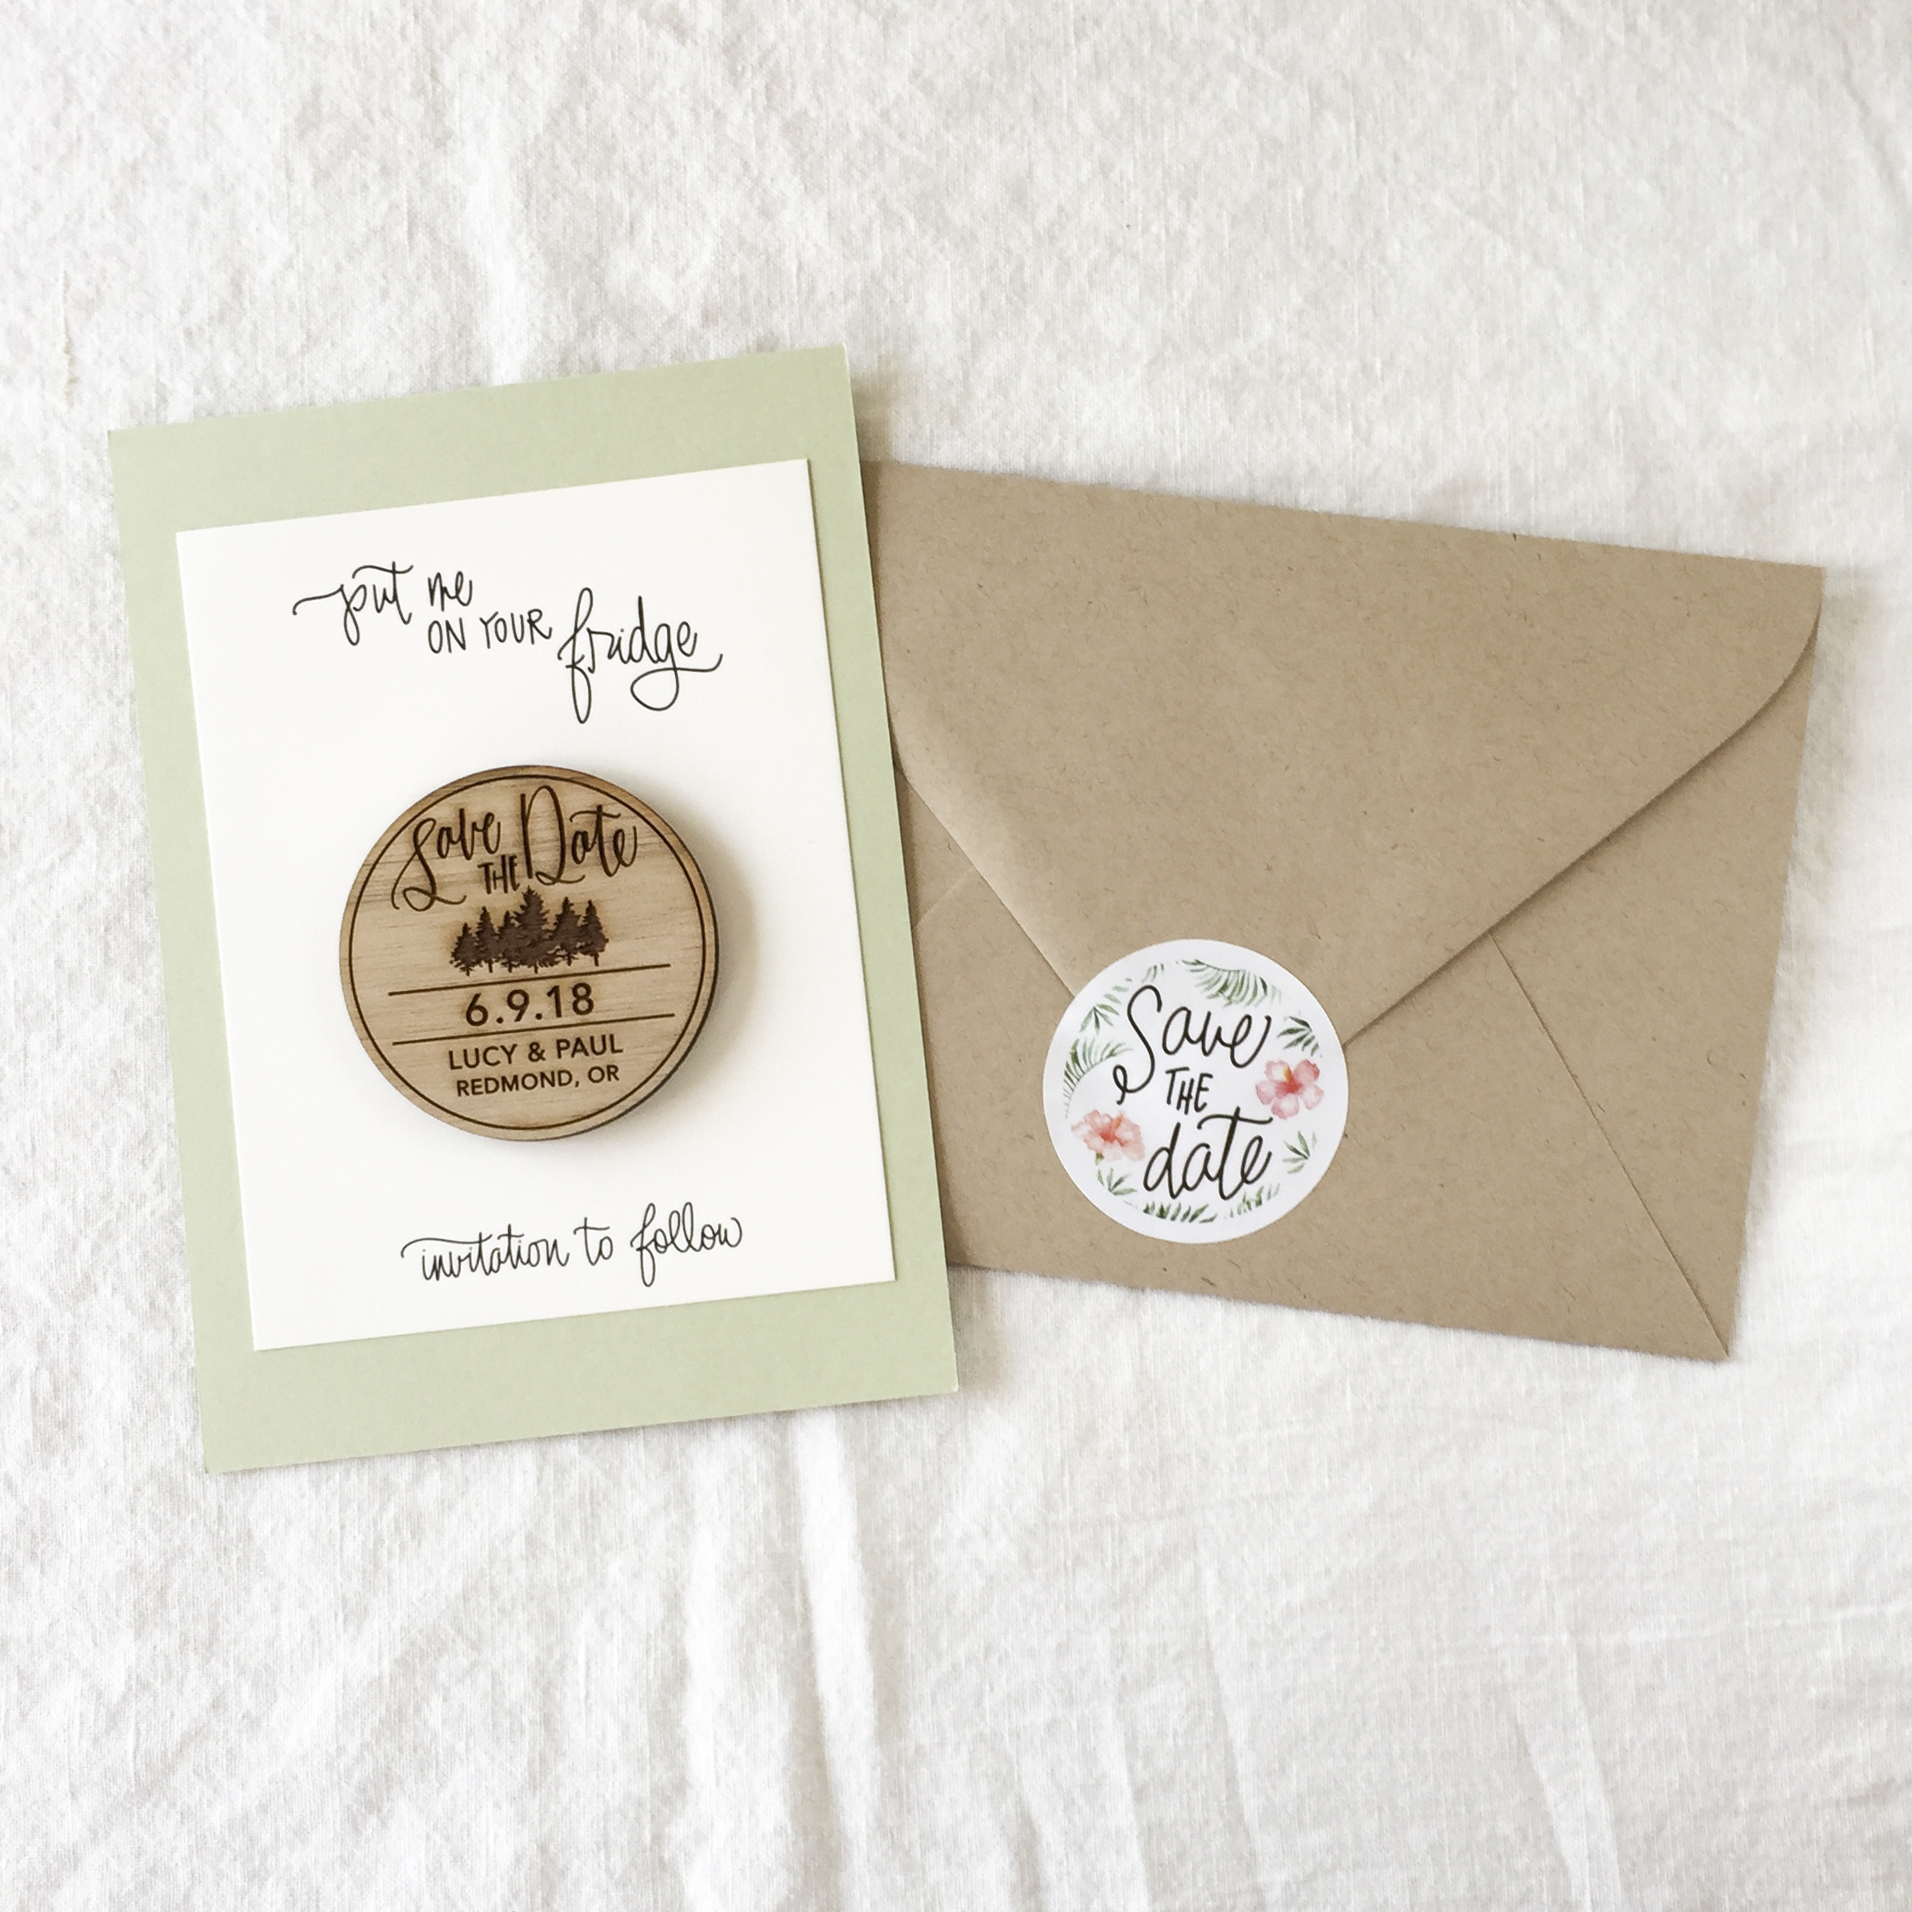 When Should I Send My Save The Dates?